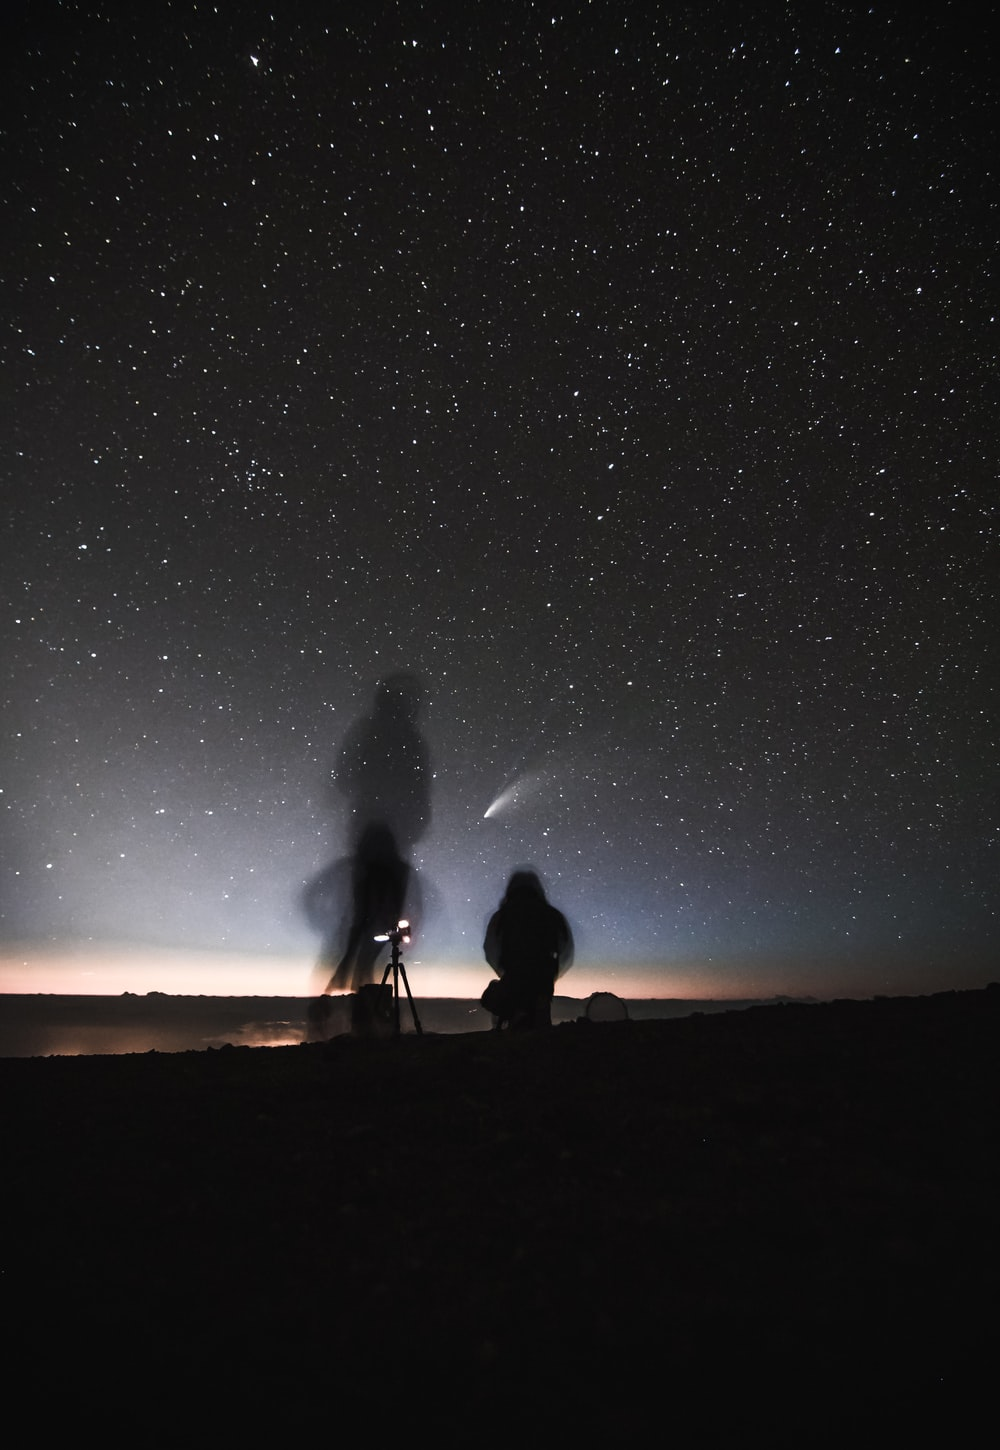 silhouette of 2 person standing on hill during night time